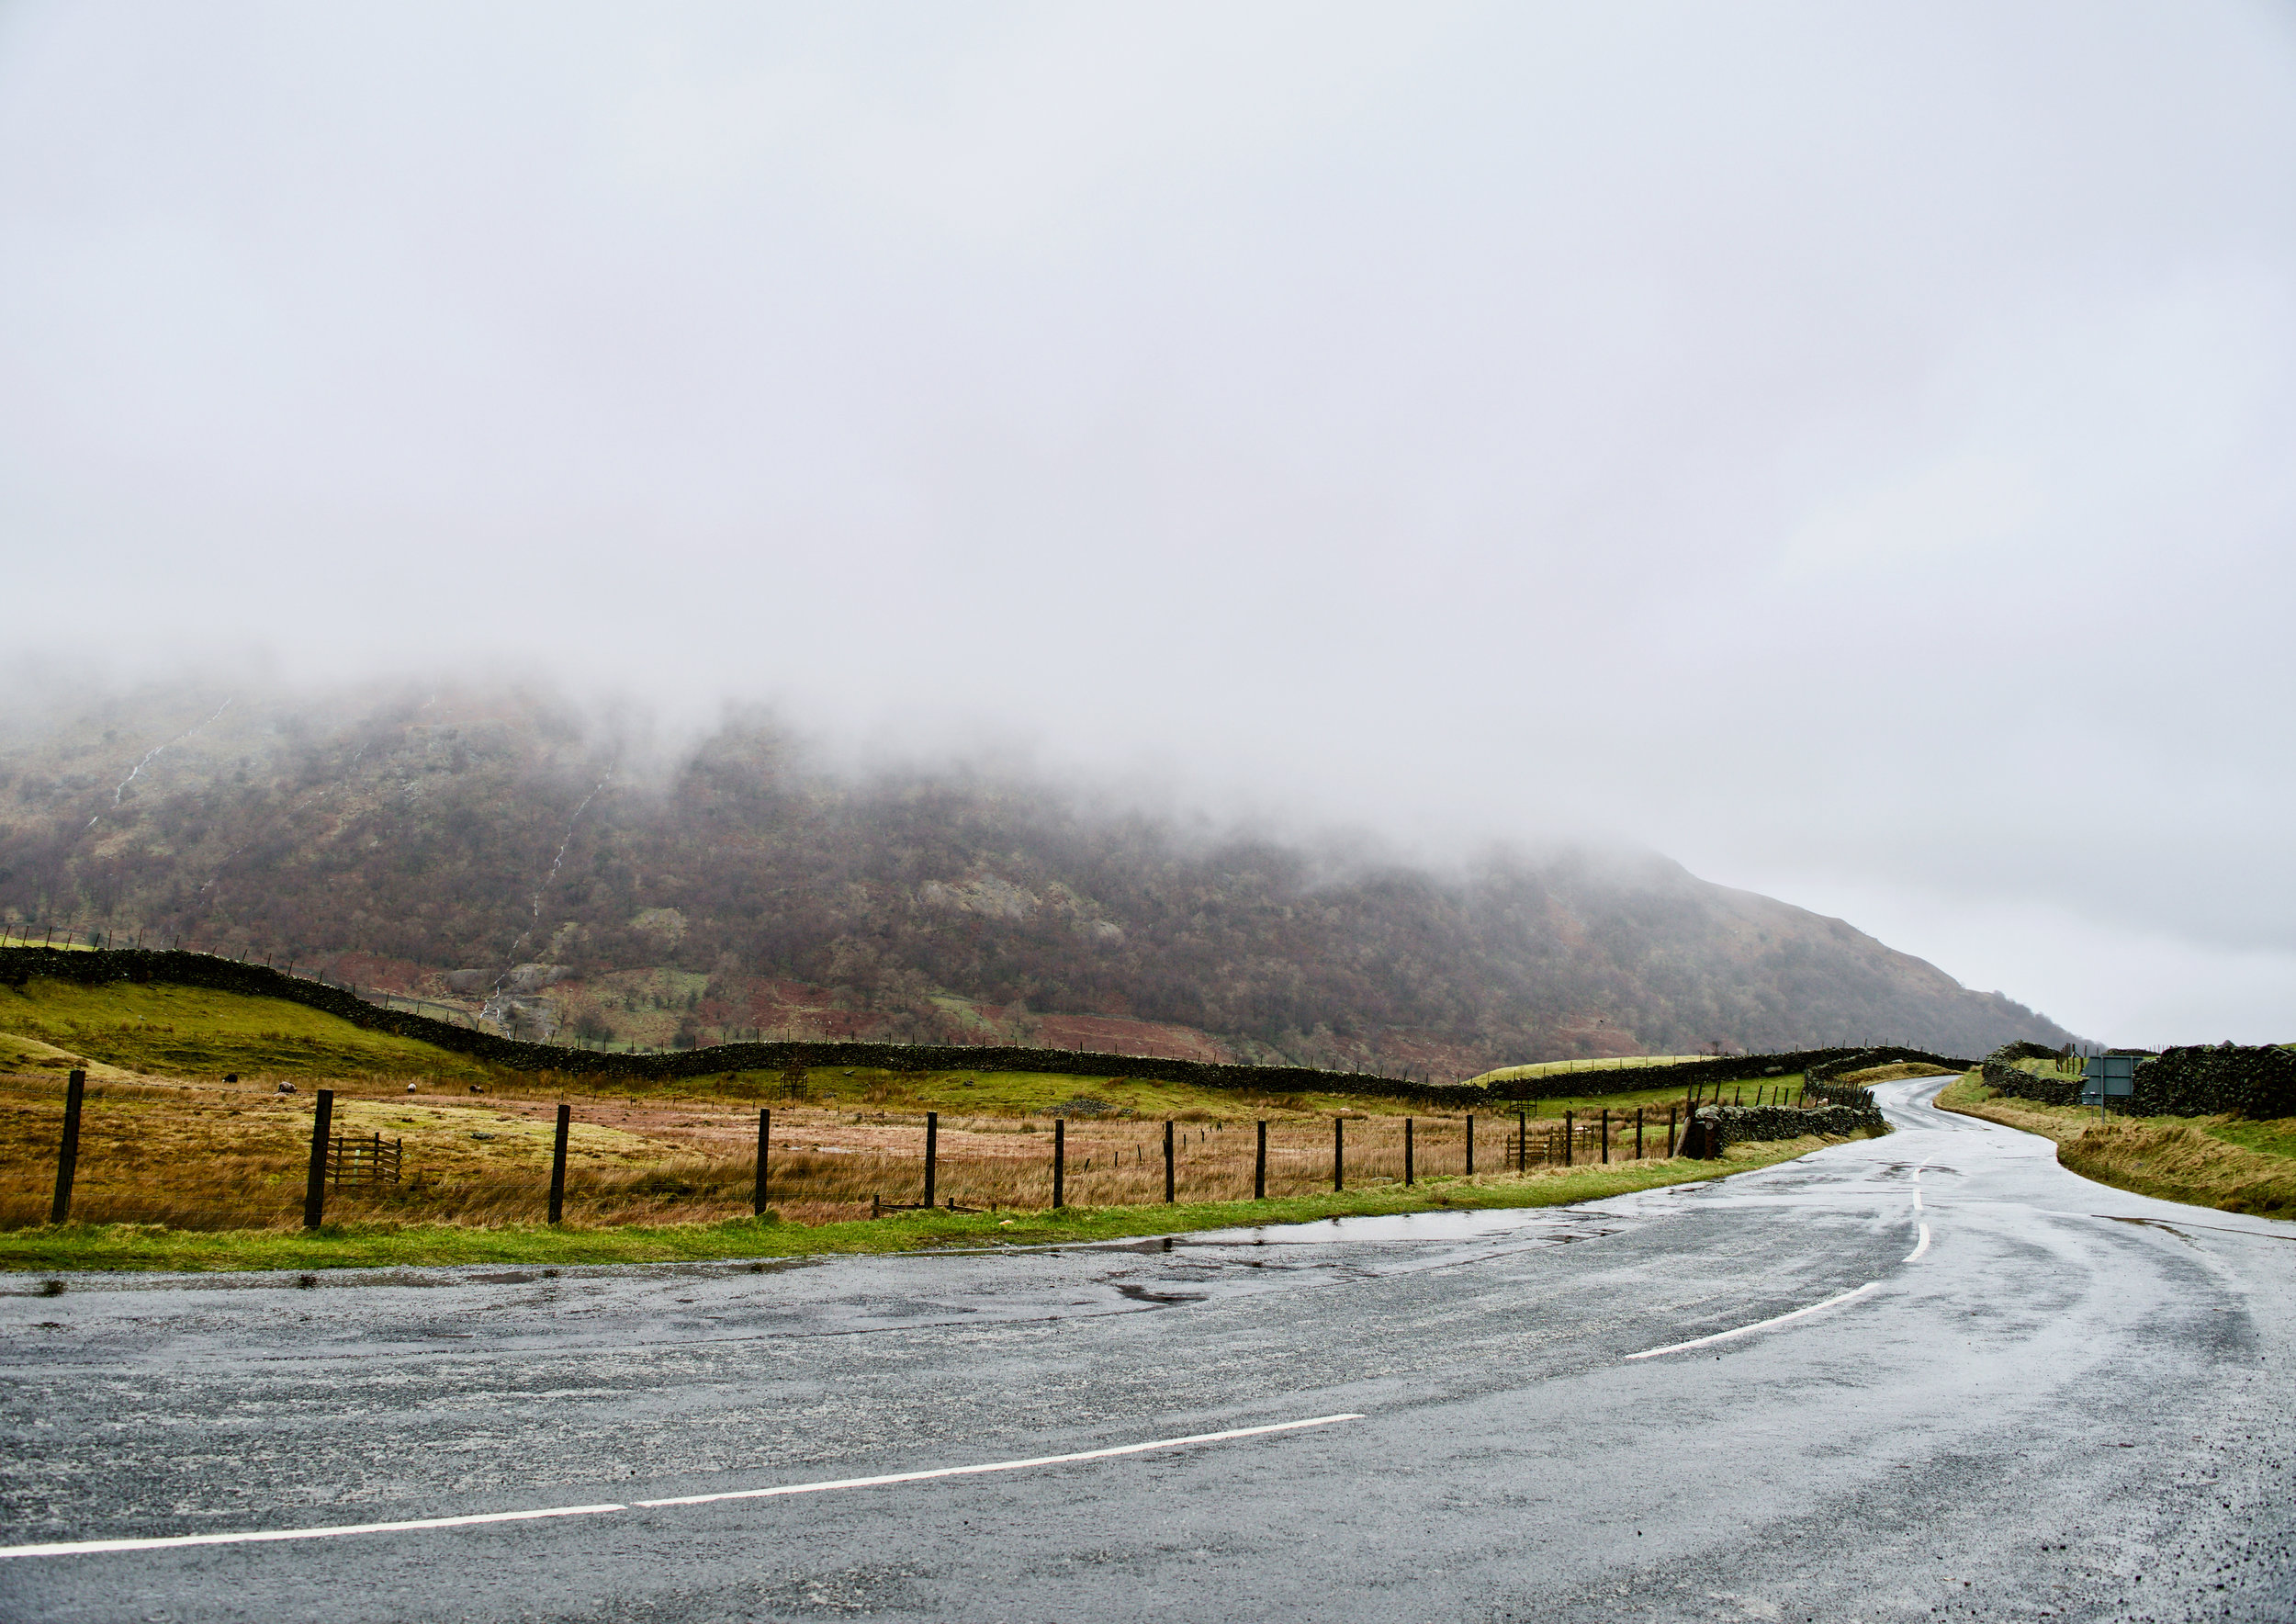 AT THE BOTTOM OF KIRKSTONE PASS